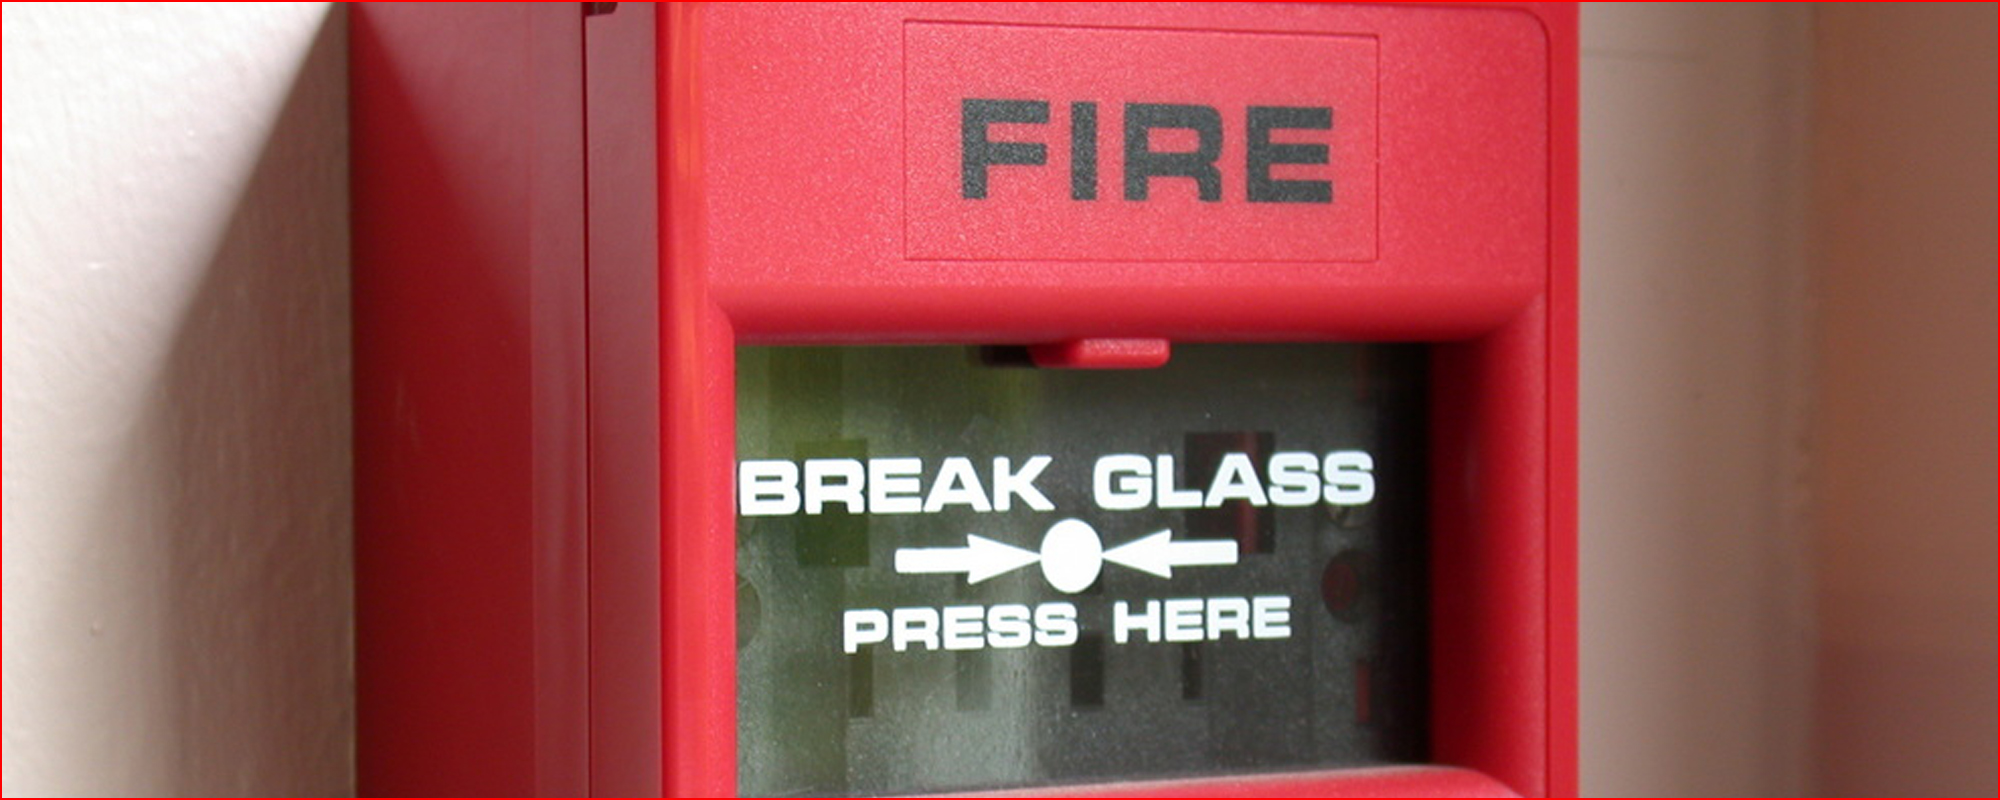 Fire Alarms Services Miami, Florida